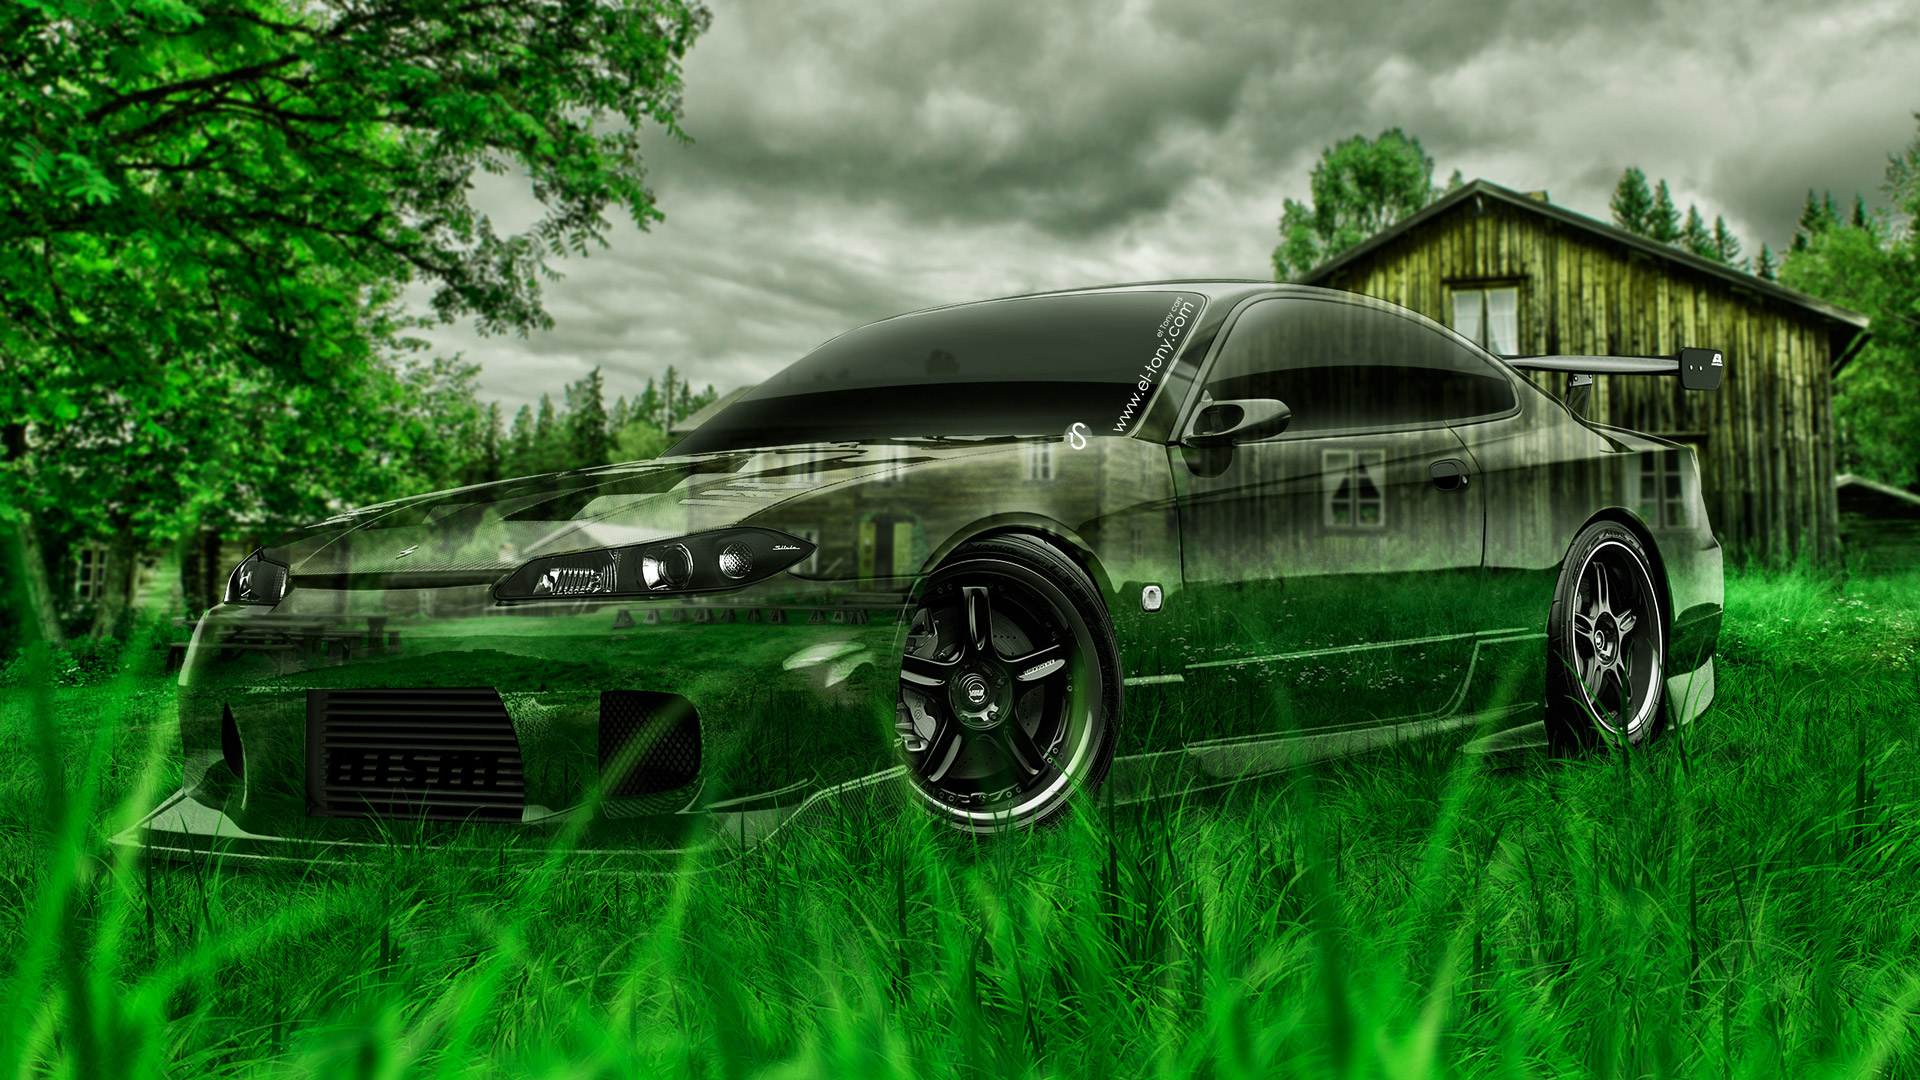 Nissan Silvia S15 JDM Crystal Nature Car 2014